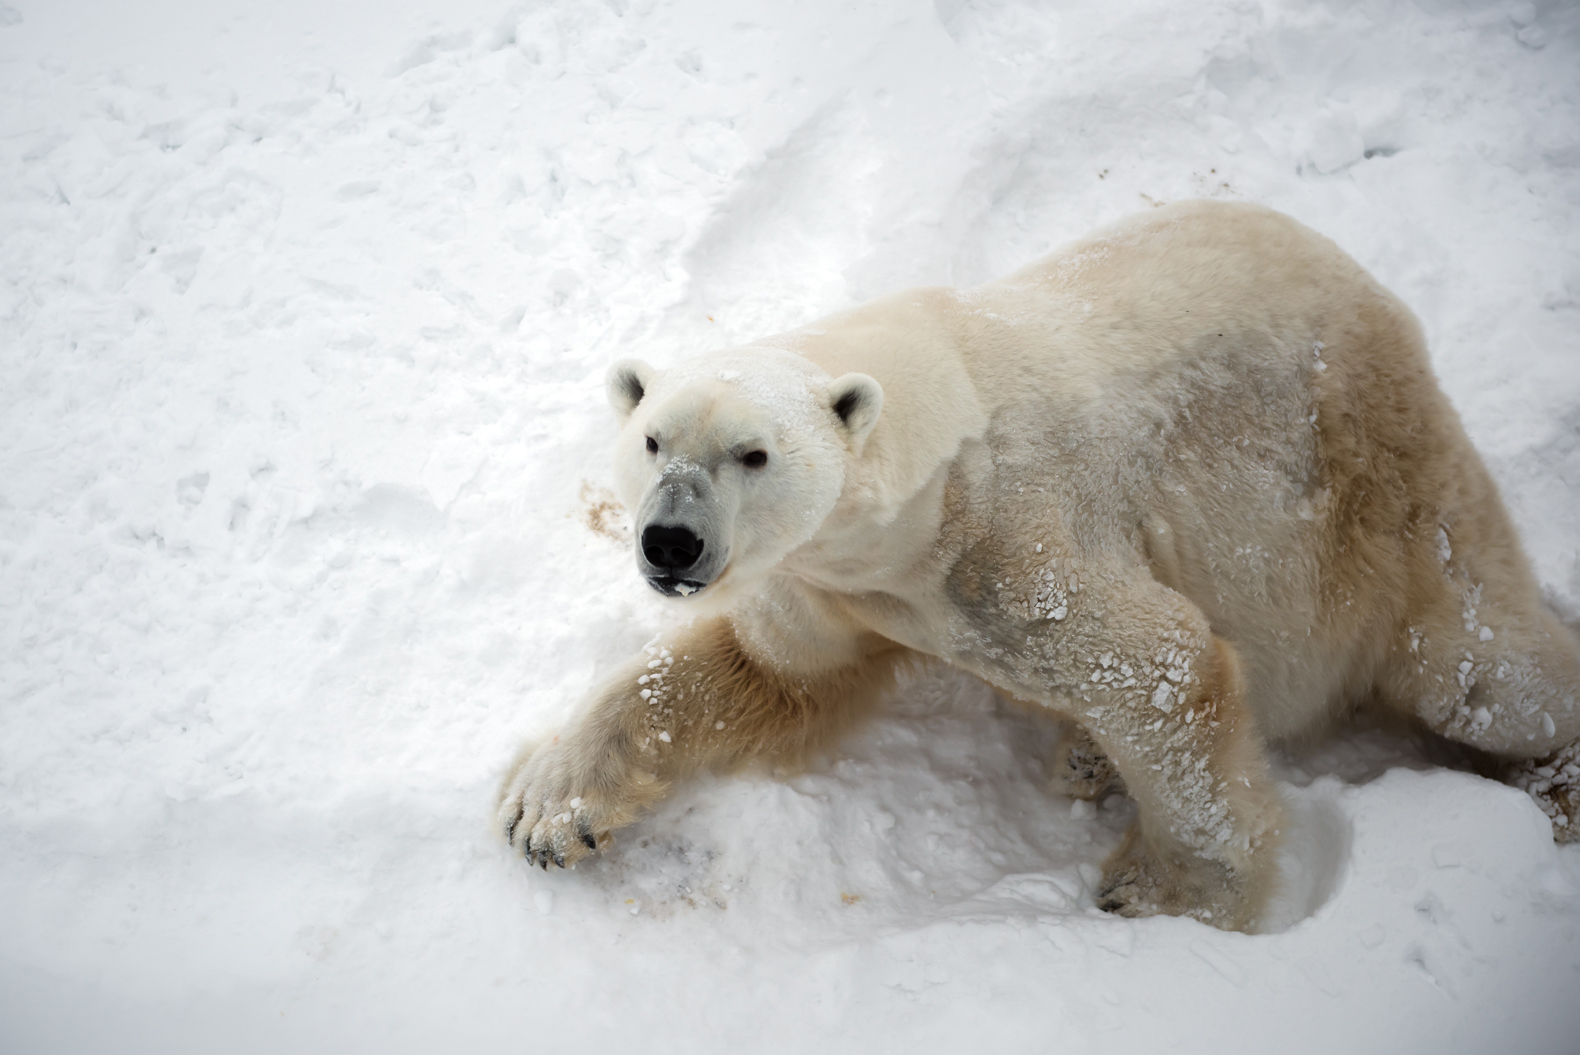 Polar bears invade small island in northern Russia, causing an emergency warning